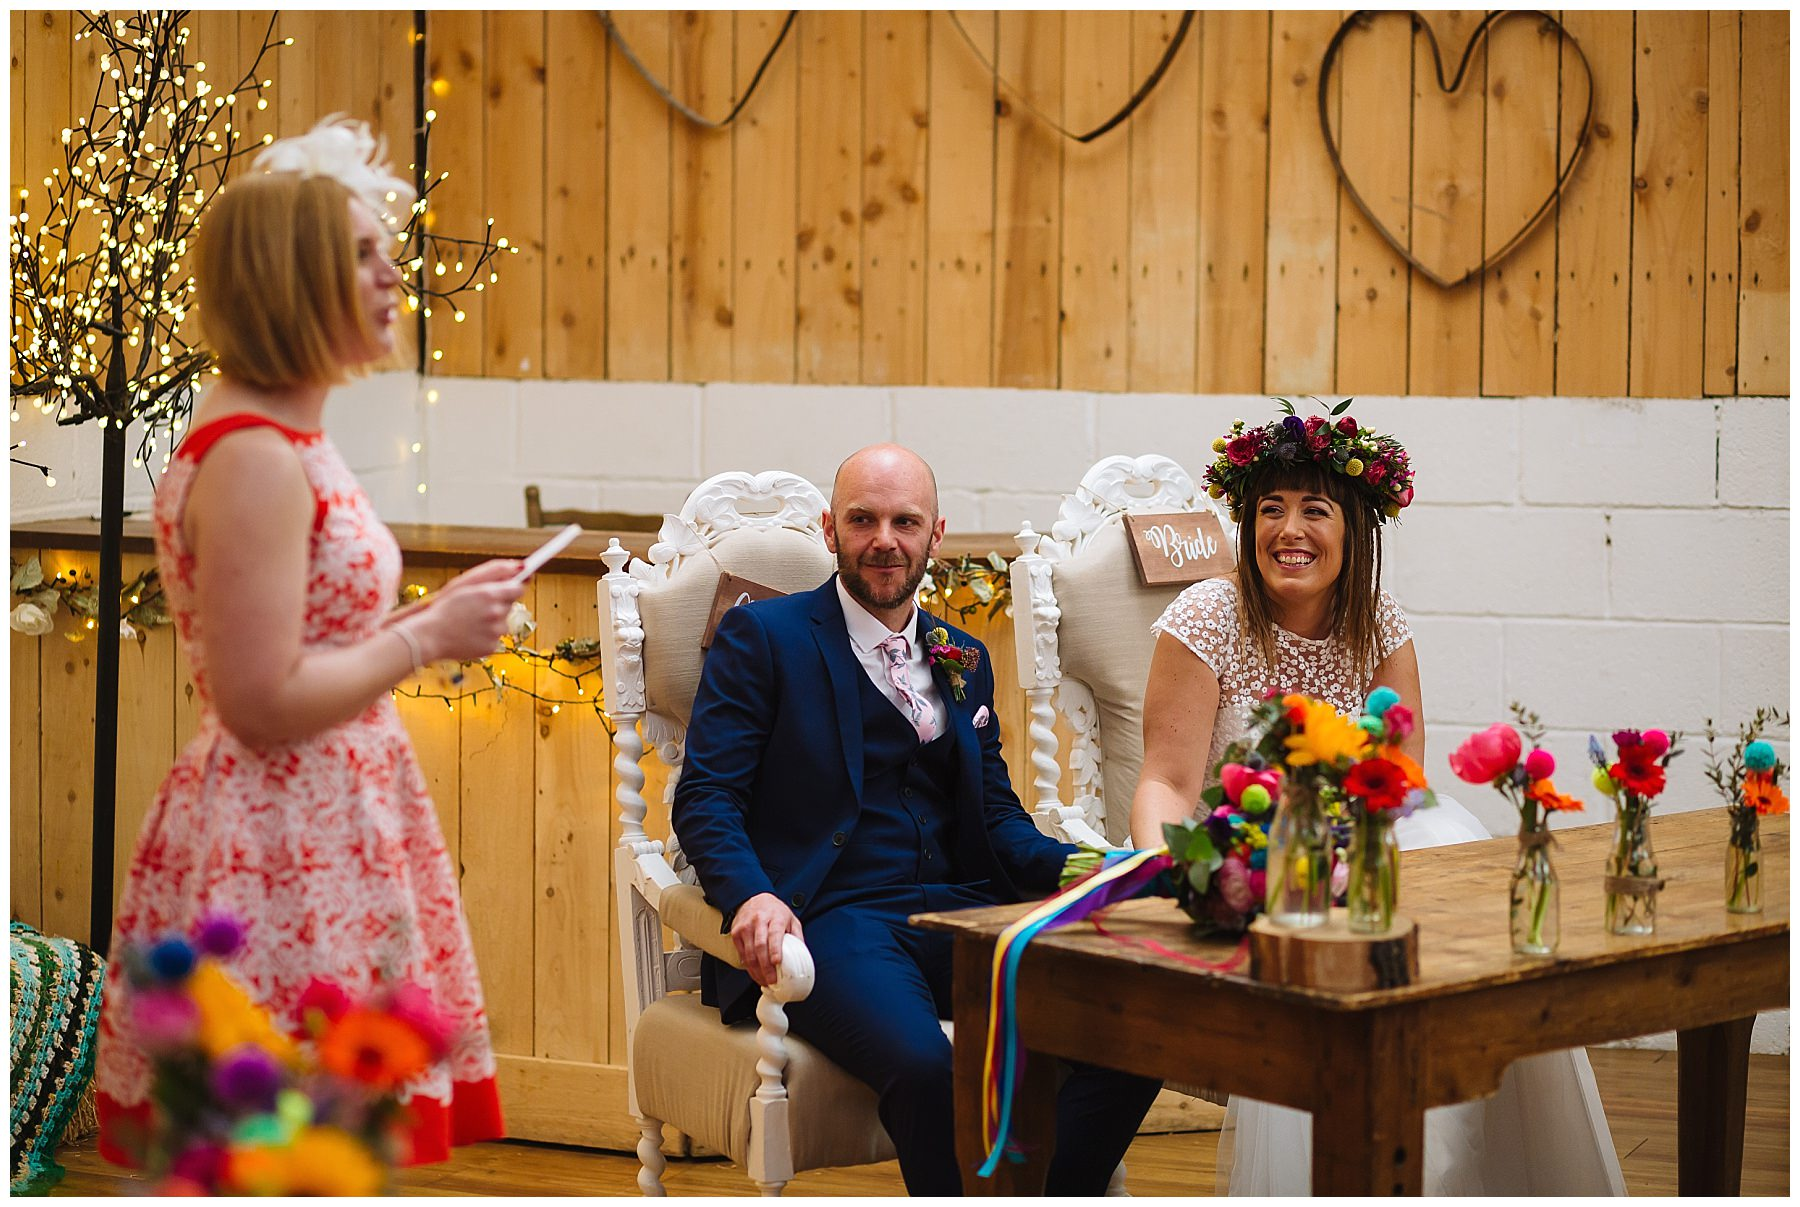 bride and groom look on as guest gives a reading during the wedding ceremony